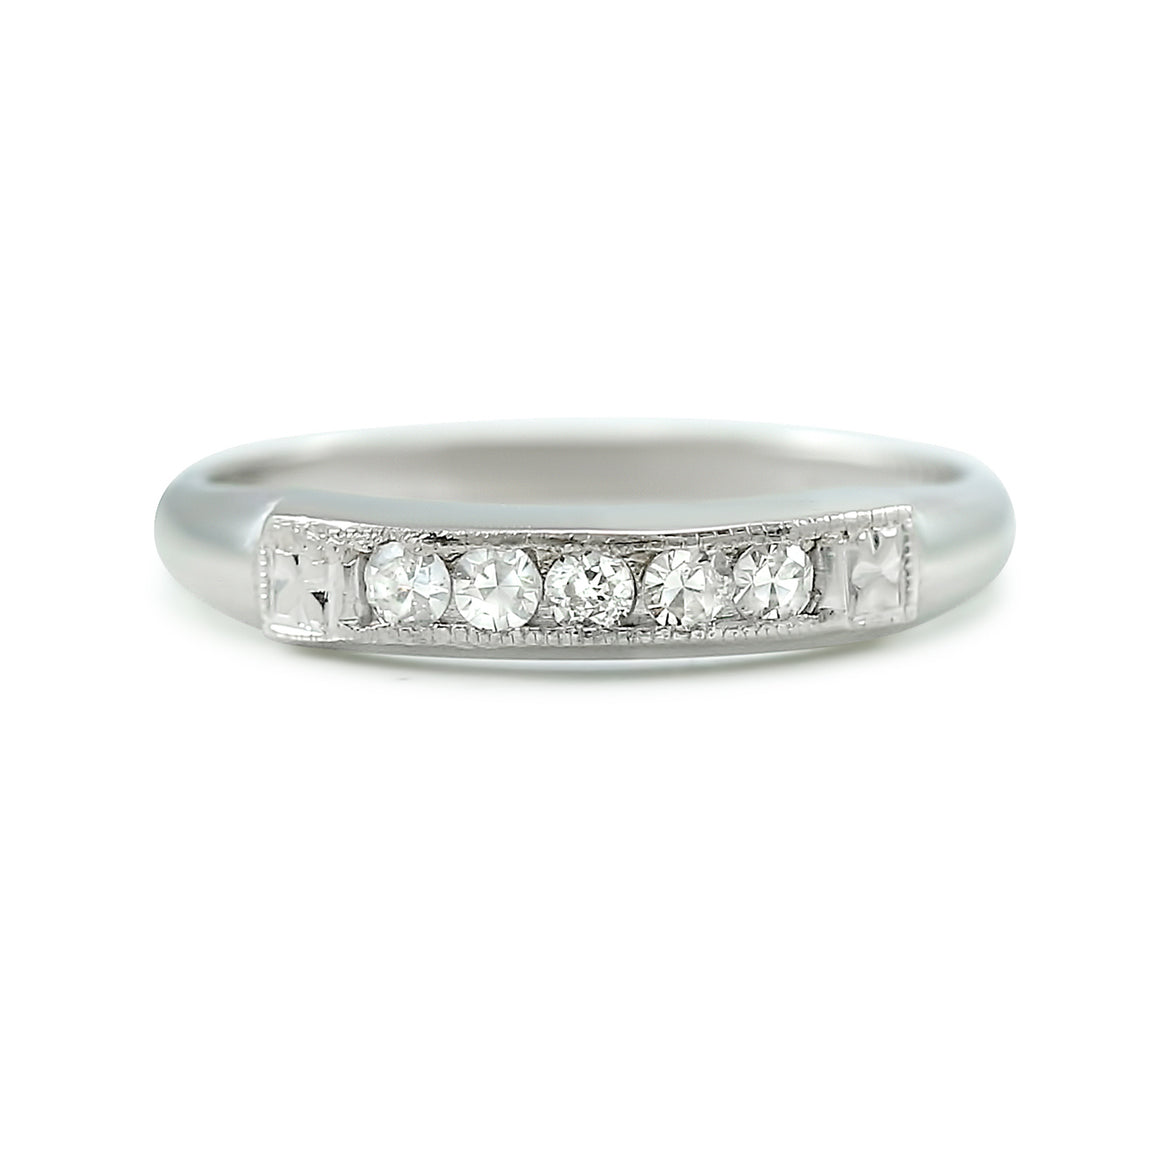 14k white gold estate wedding band with channel set white diamonds totaling ~0.25ct